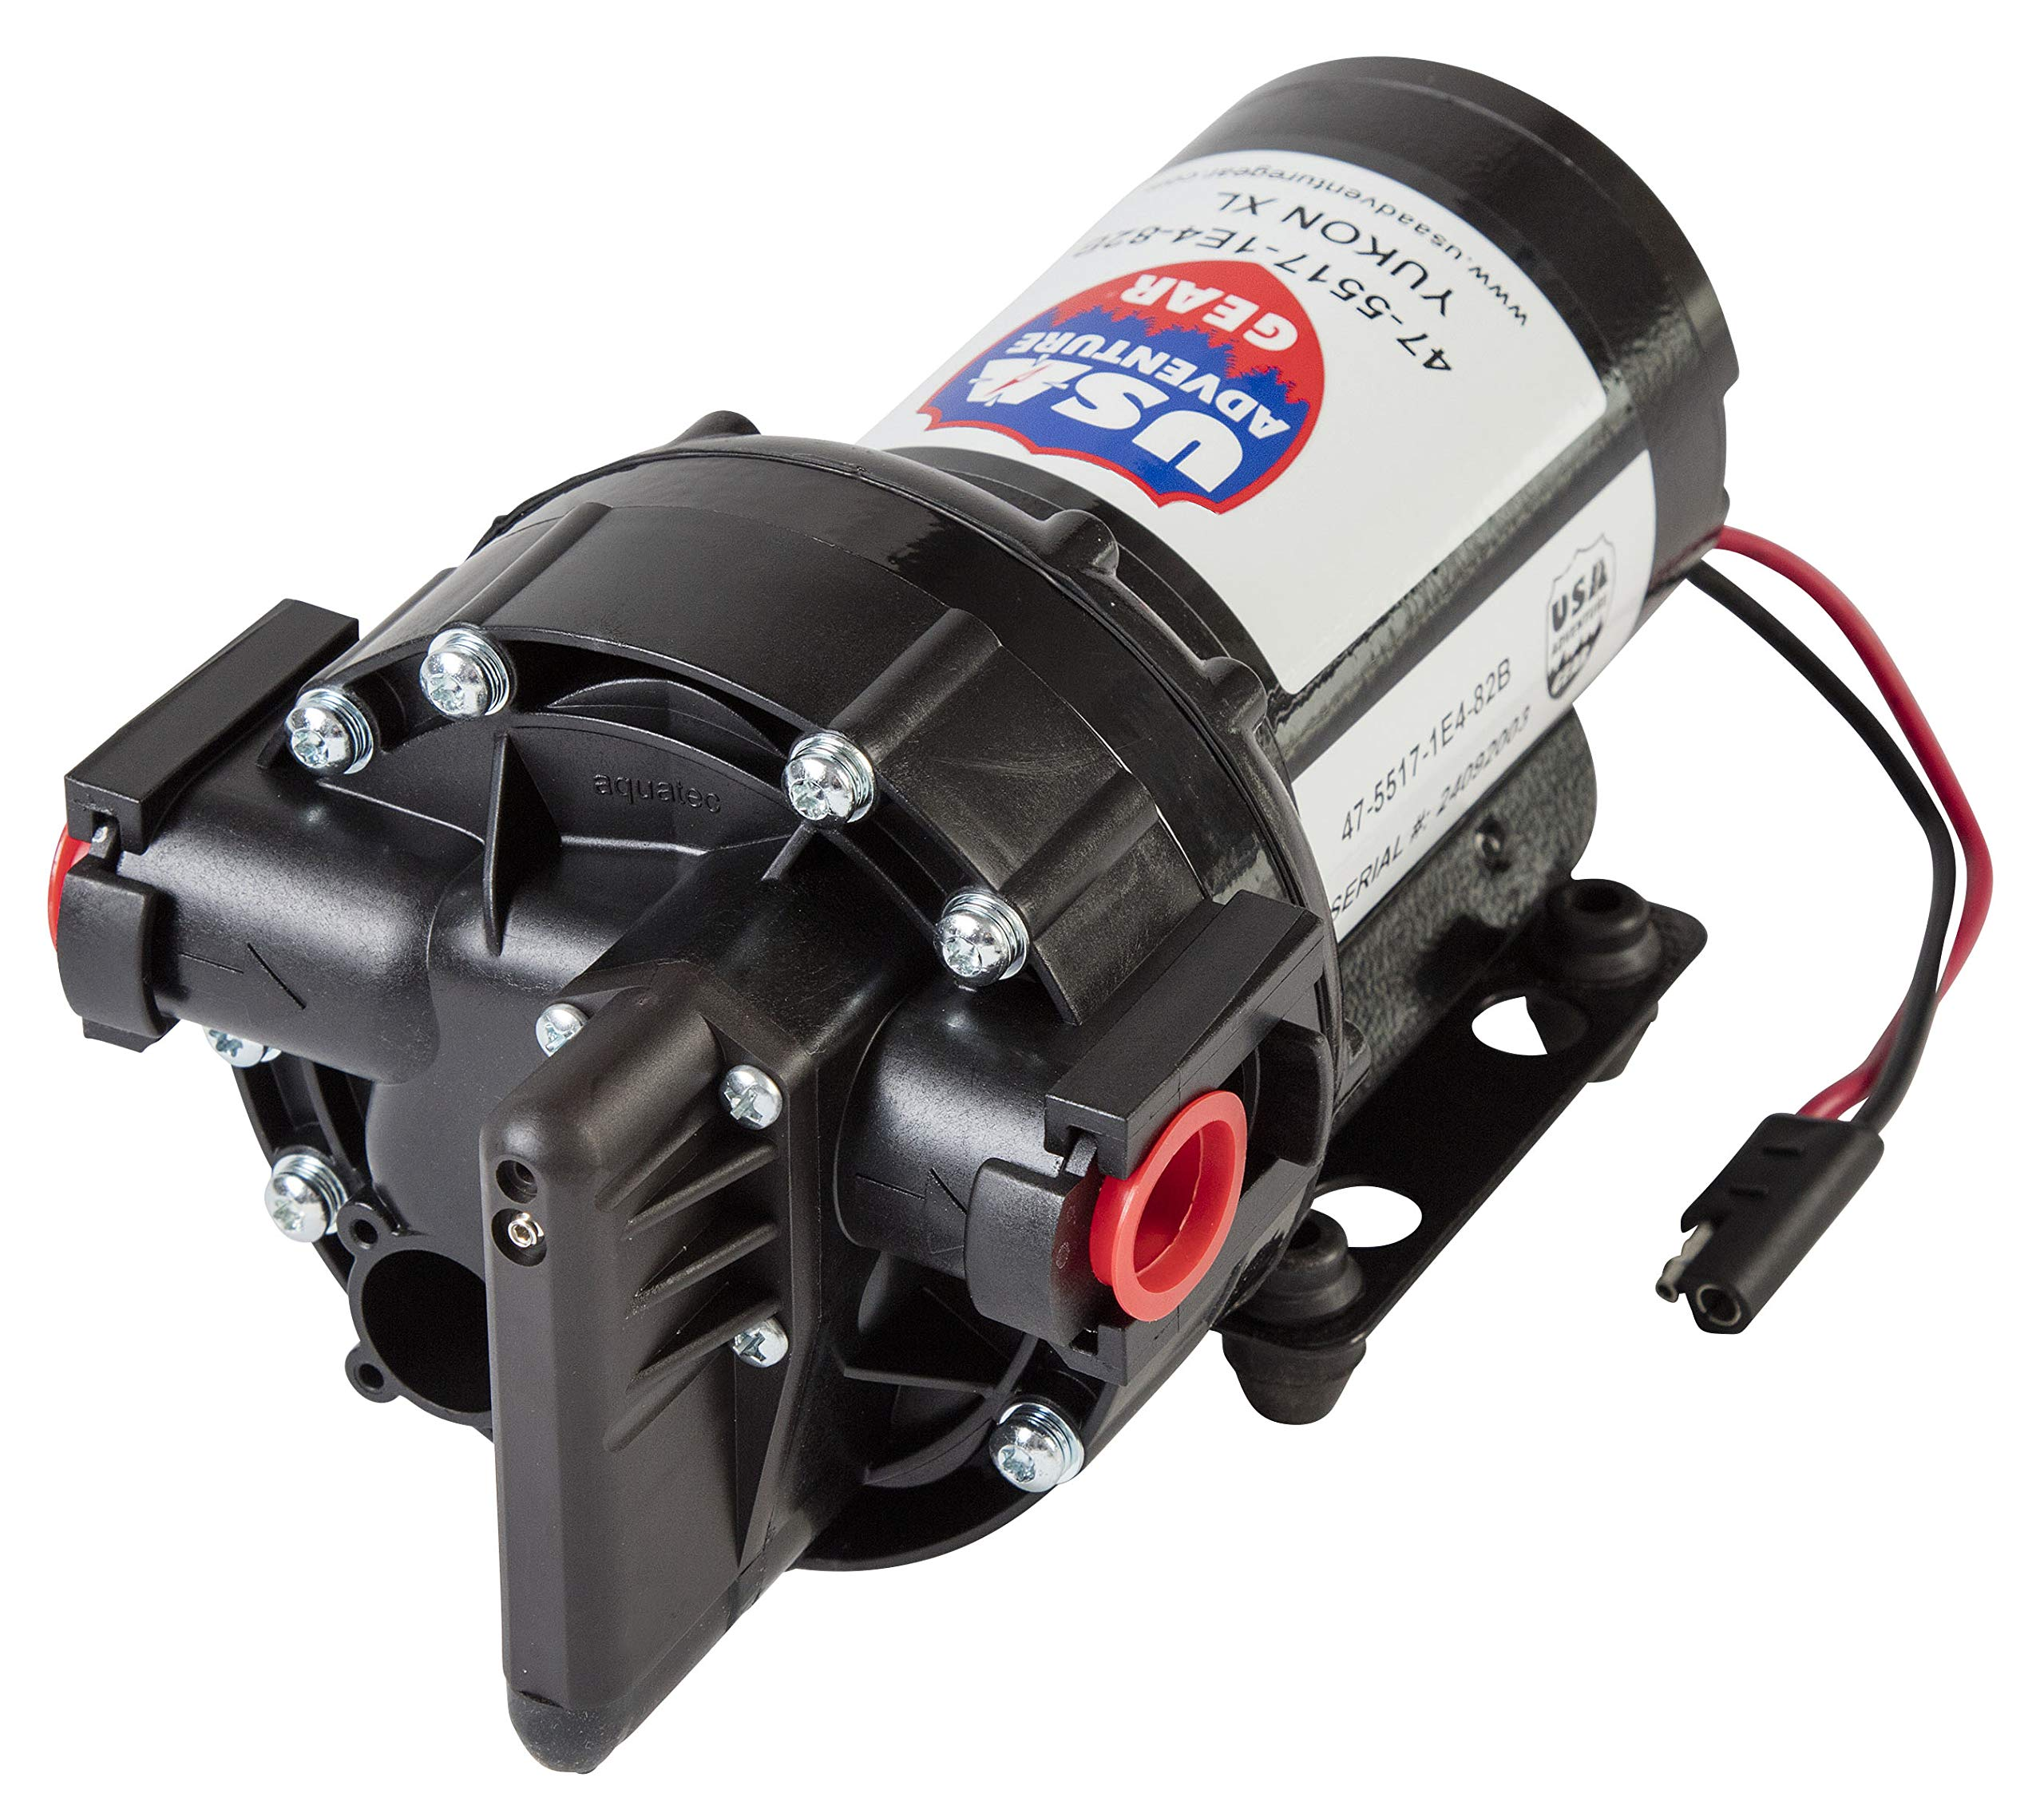 USA Adventure Gear Progear 5500 High Performance Professional Grade Water Pump | 5.3GPM | 14 Foot Lift | 60 PSI |Electric Quiet Operation | Self-Priming | Potable Water Use | RV, Boat, Plumbing by USA Adventure Gear